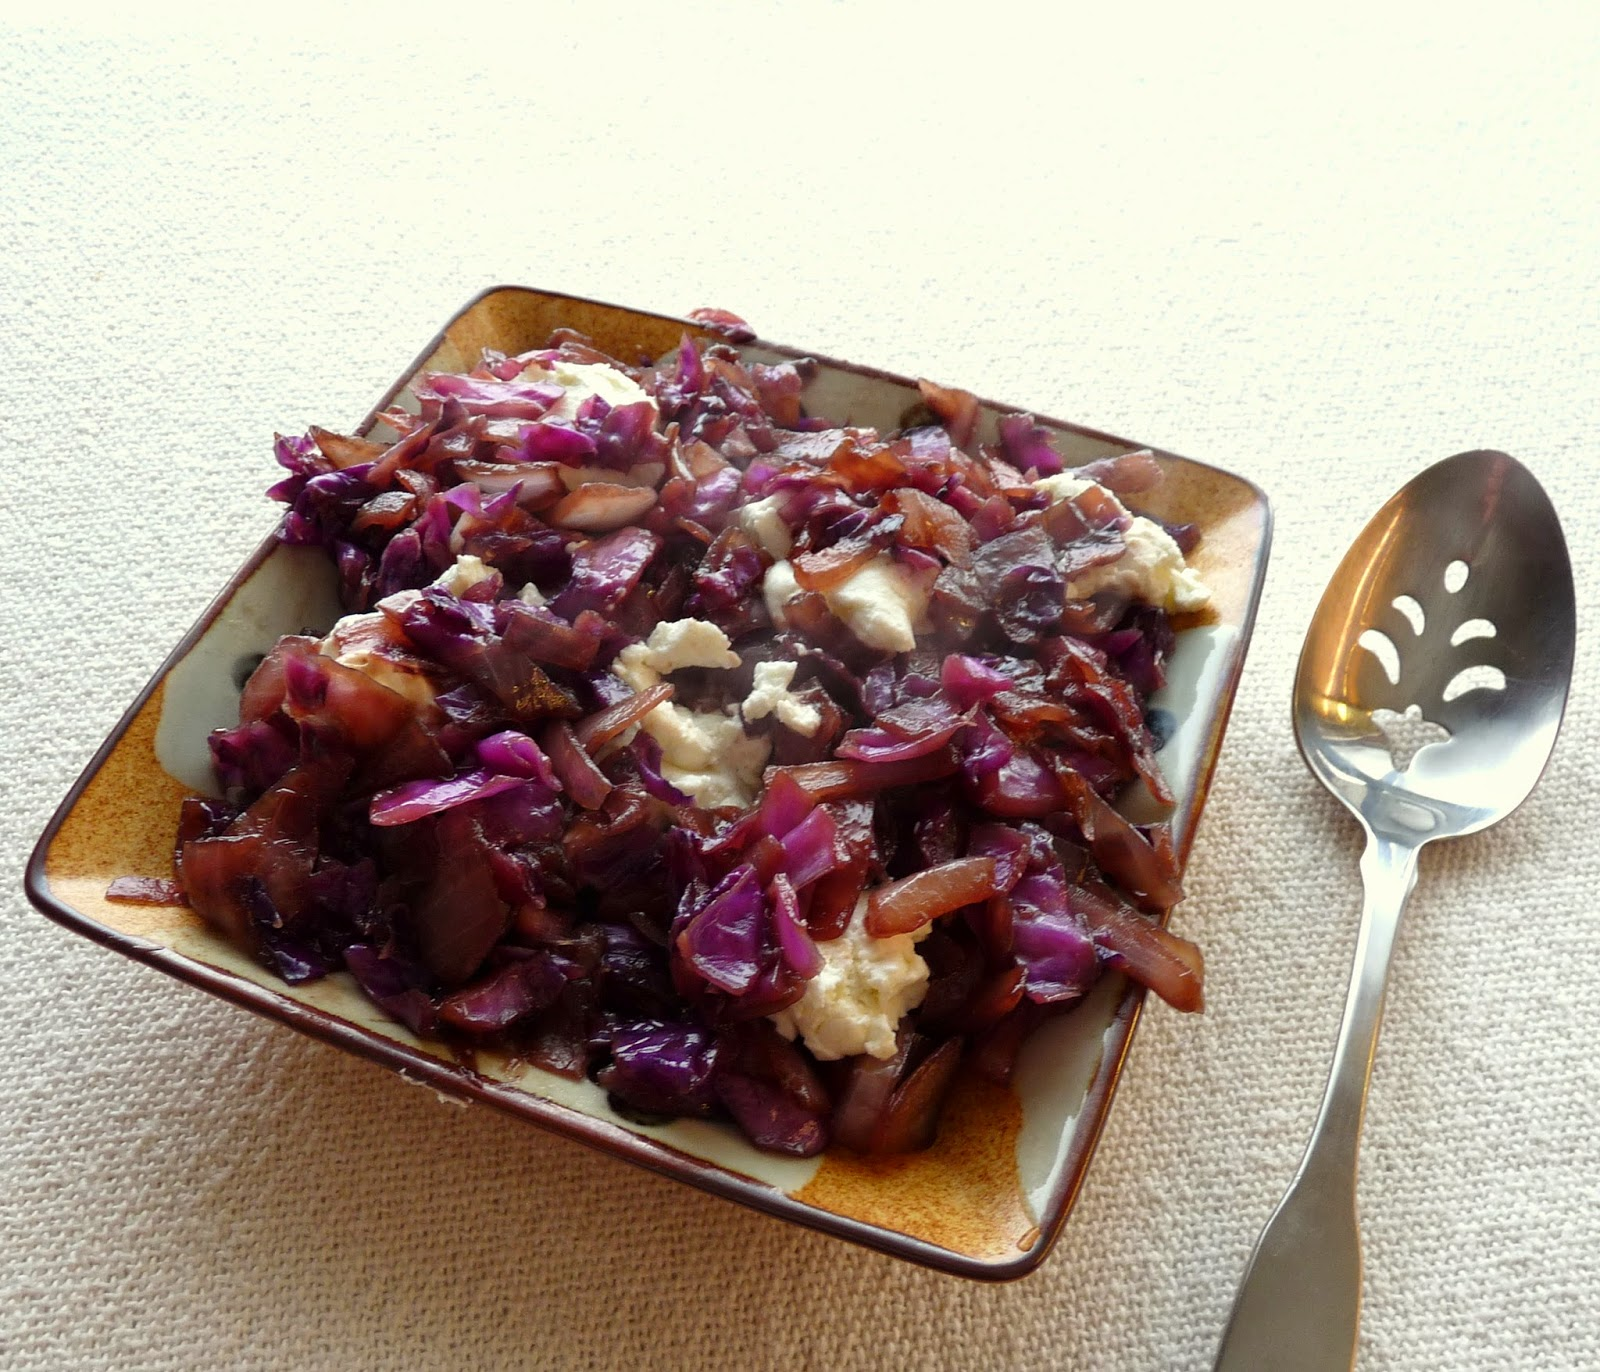 Braised Red Cabbage & Onion with Goat Cheese